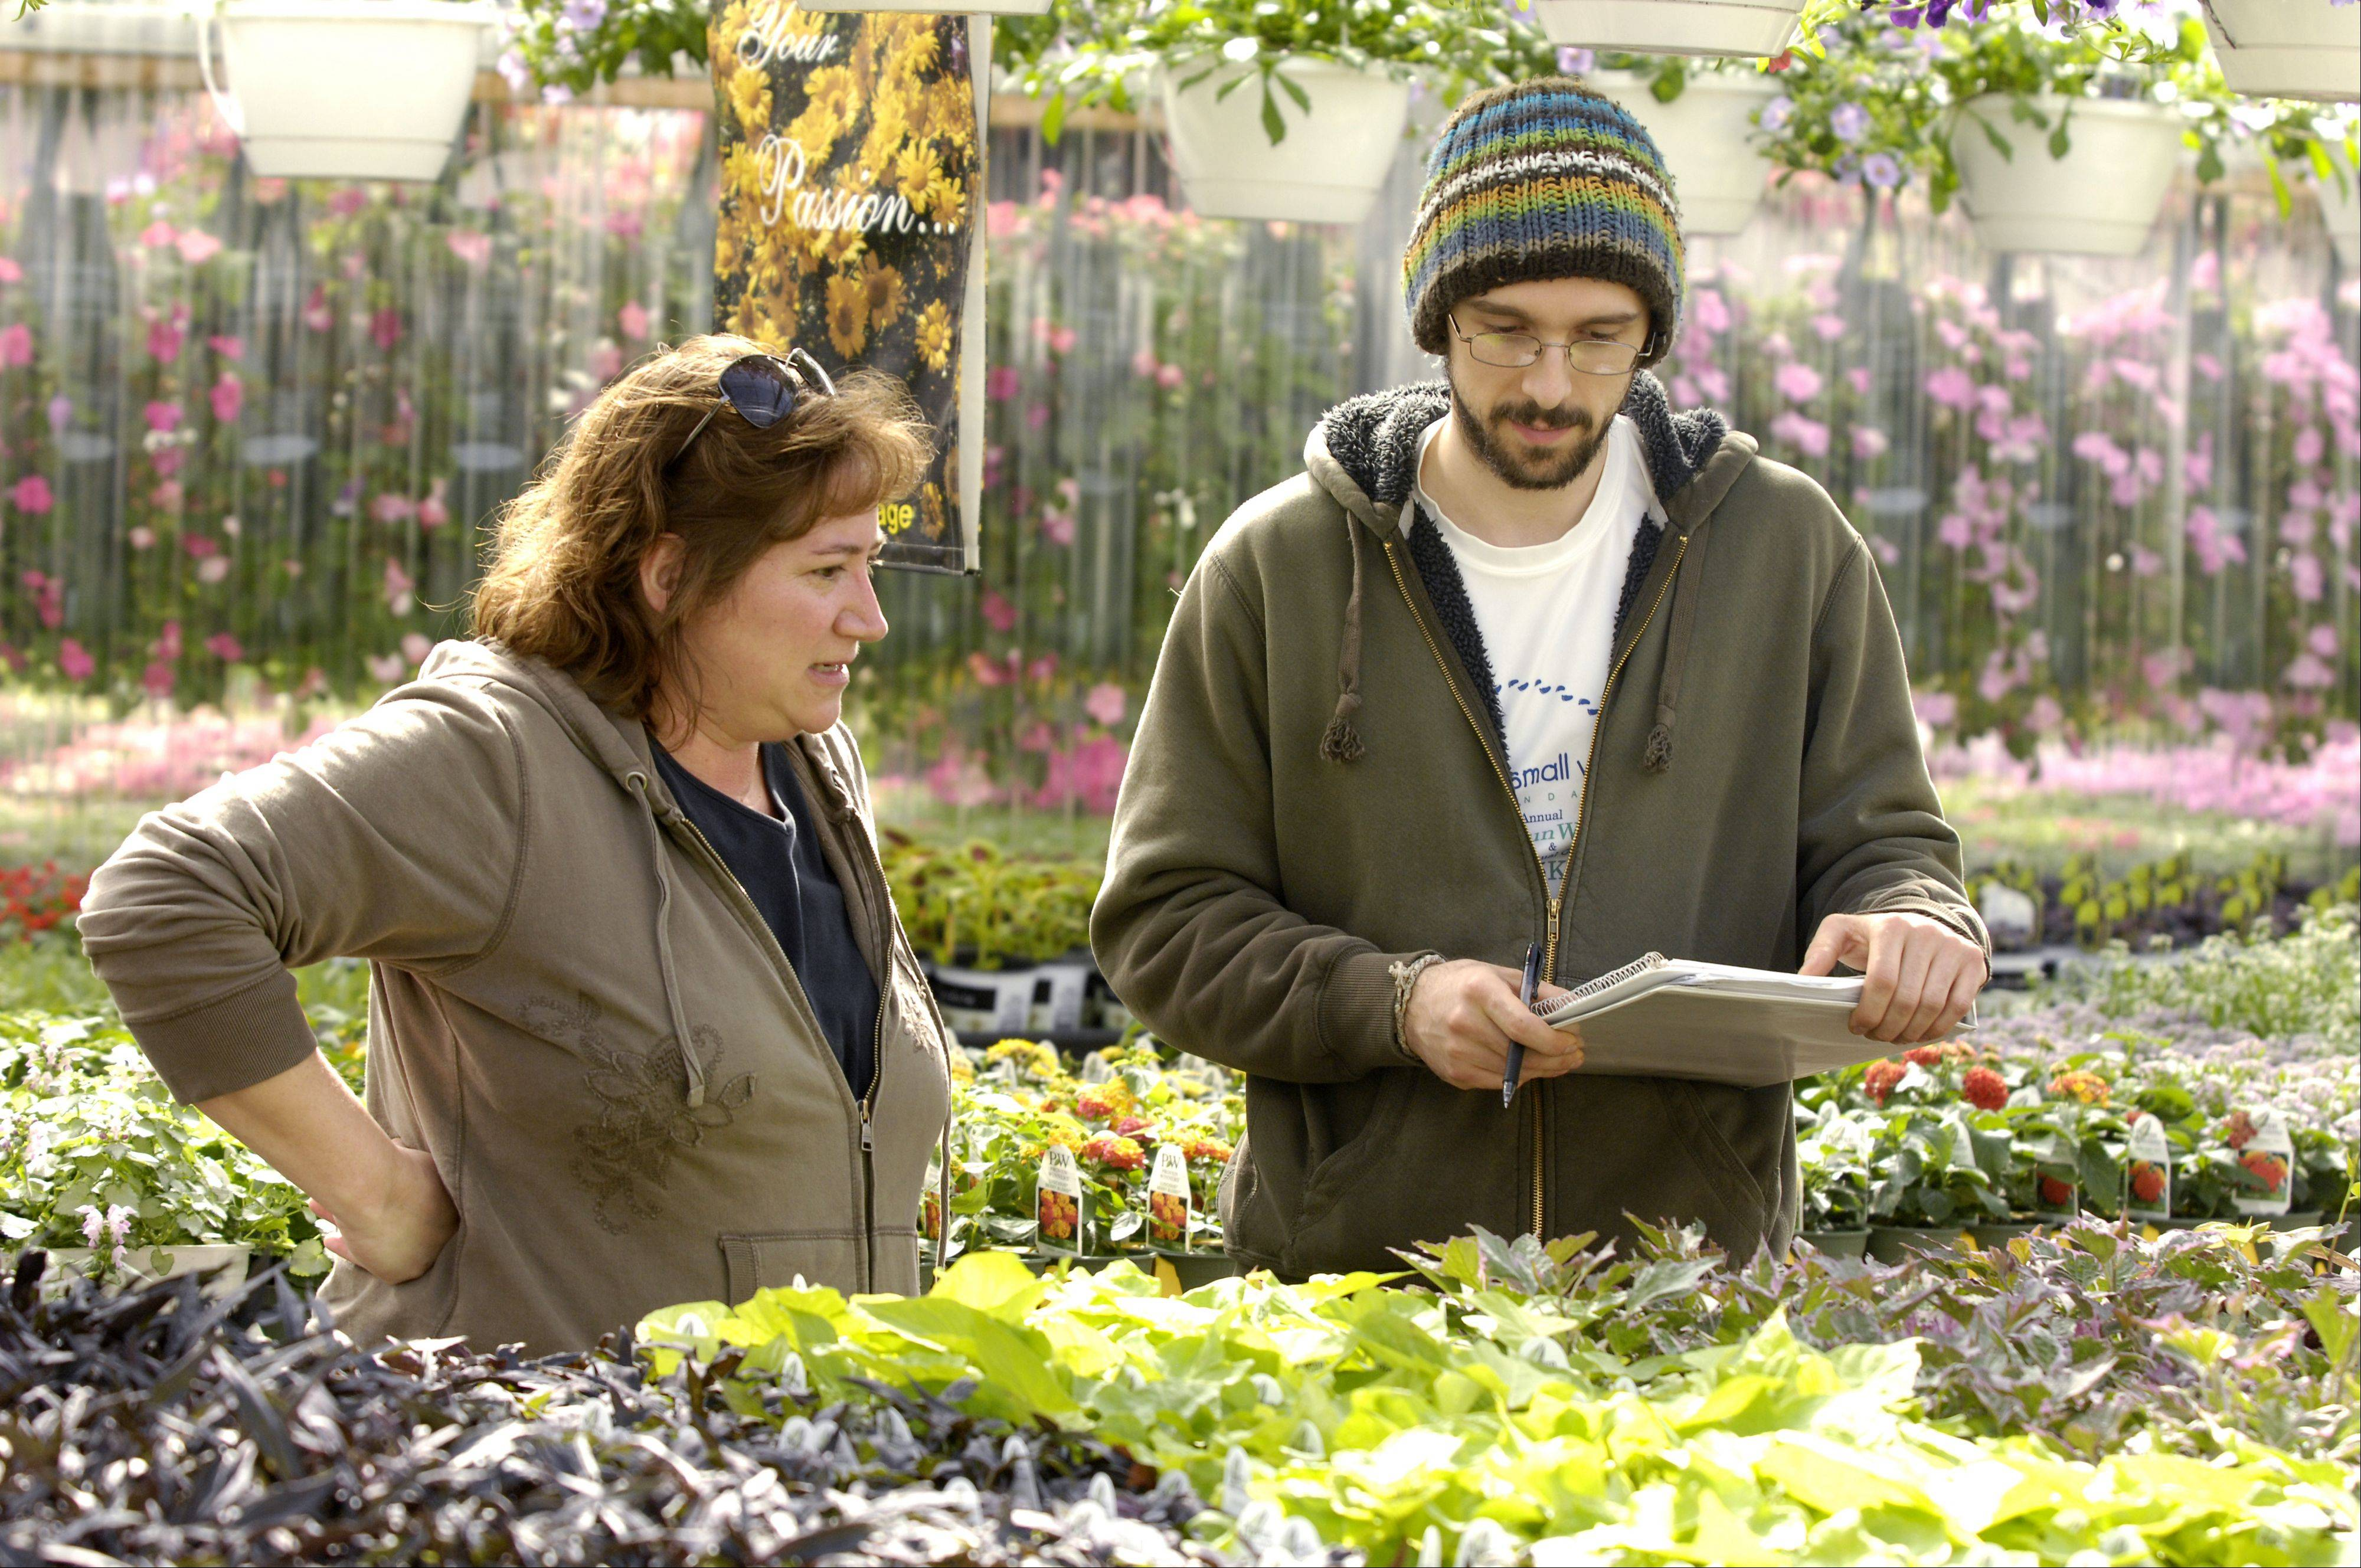 Amy Hull College of DuPage greenhouse supervisor and adjunct faculty member works with horticulture student Warren Kahtib, in the college's greenhouse.